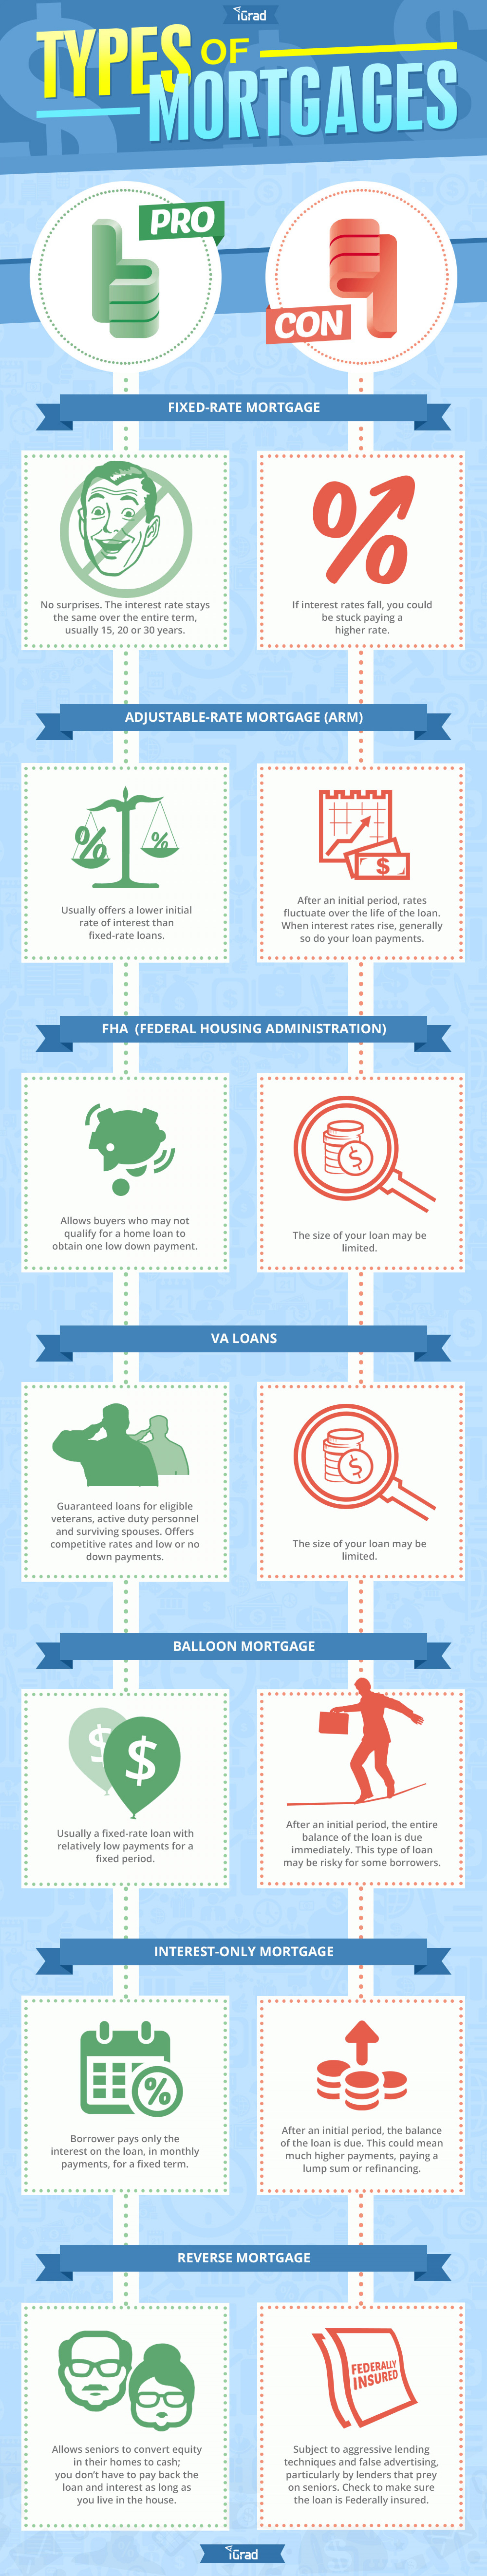 Types of Mortgages Infographic